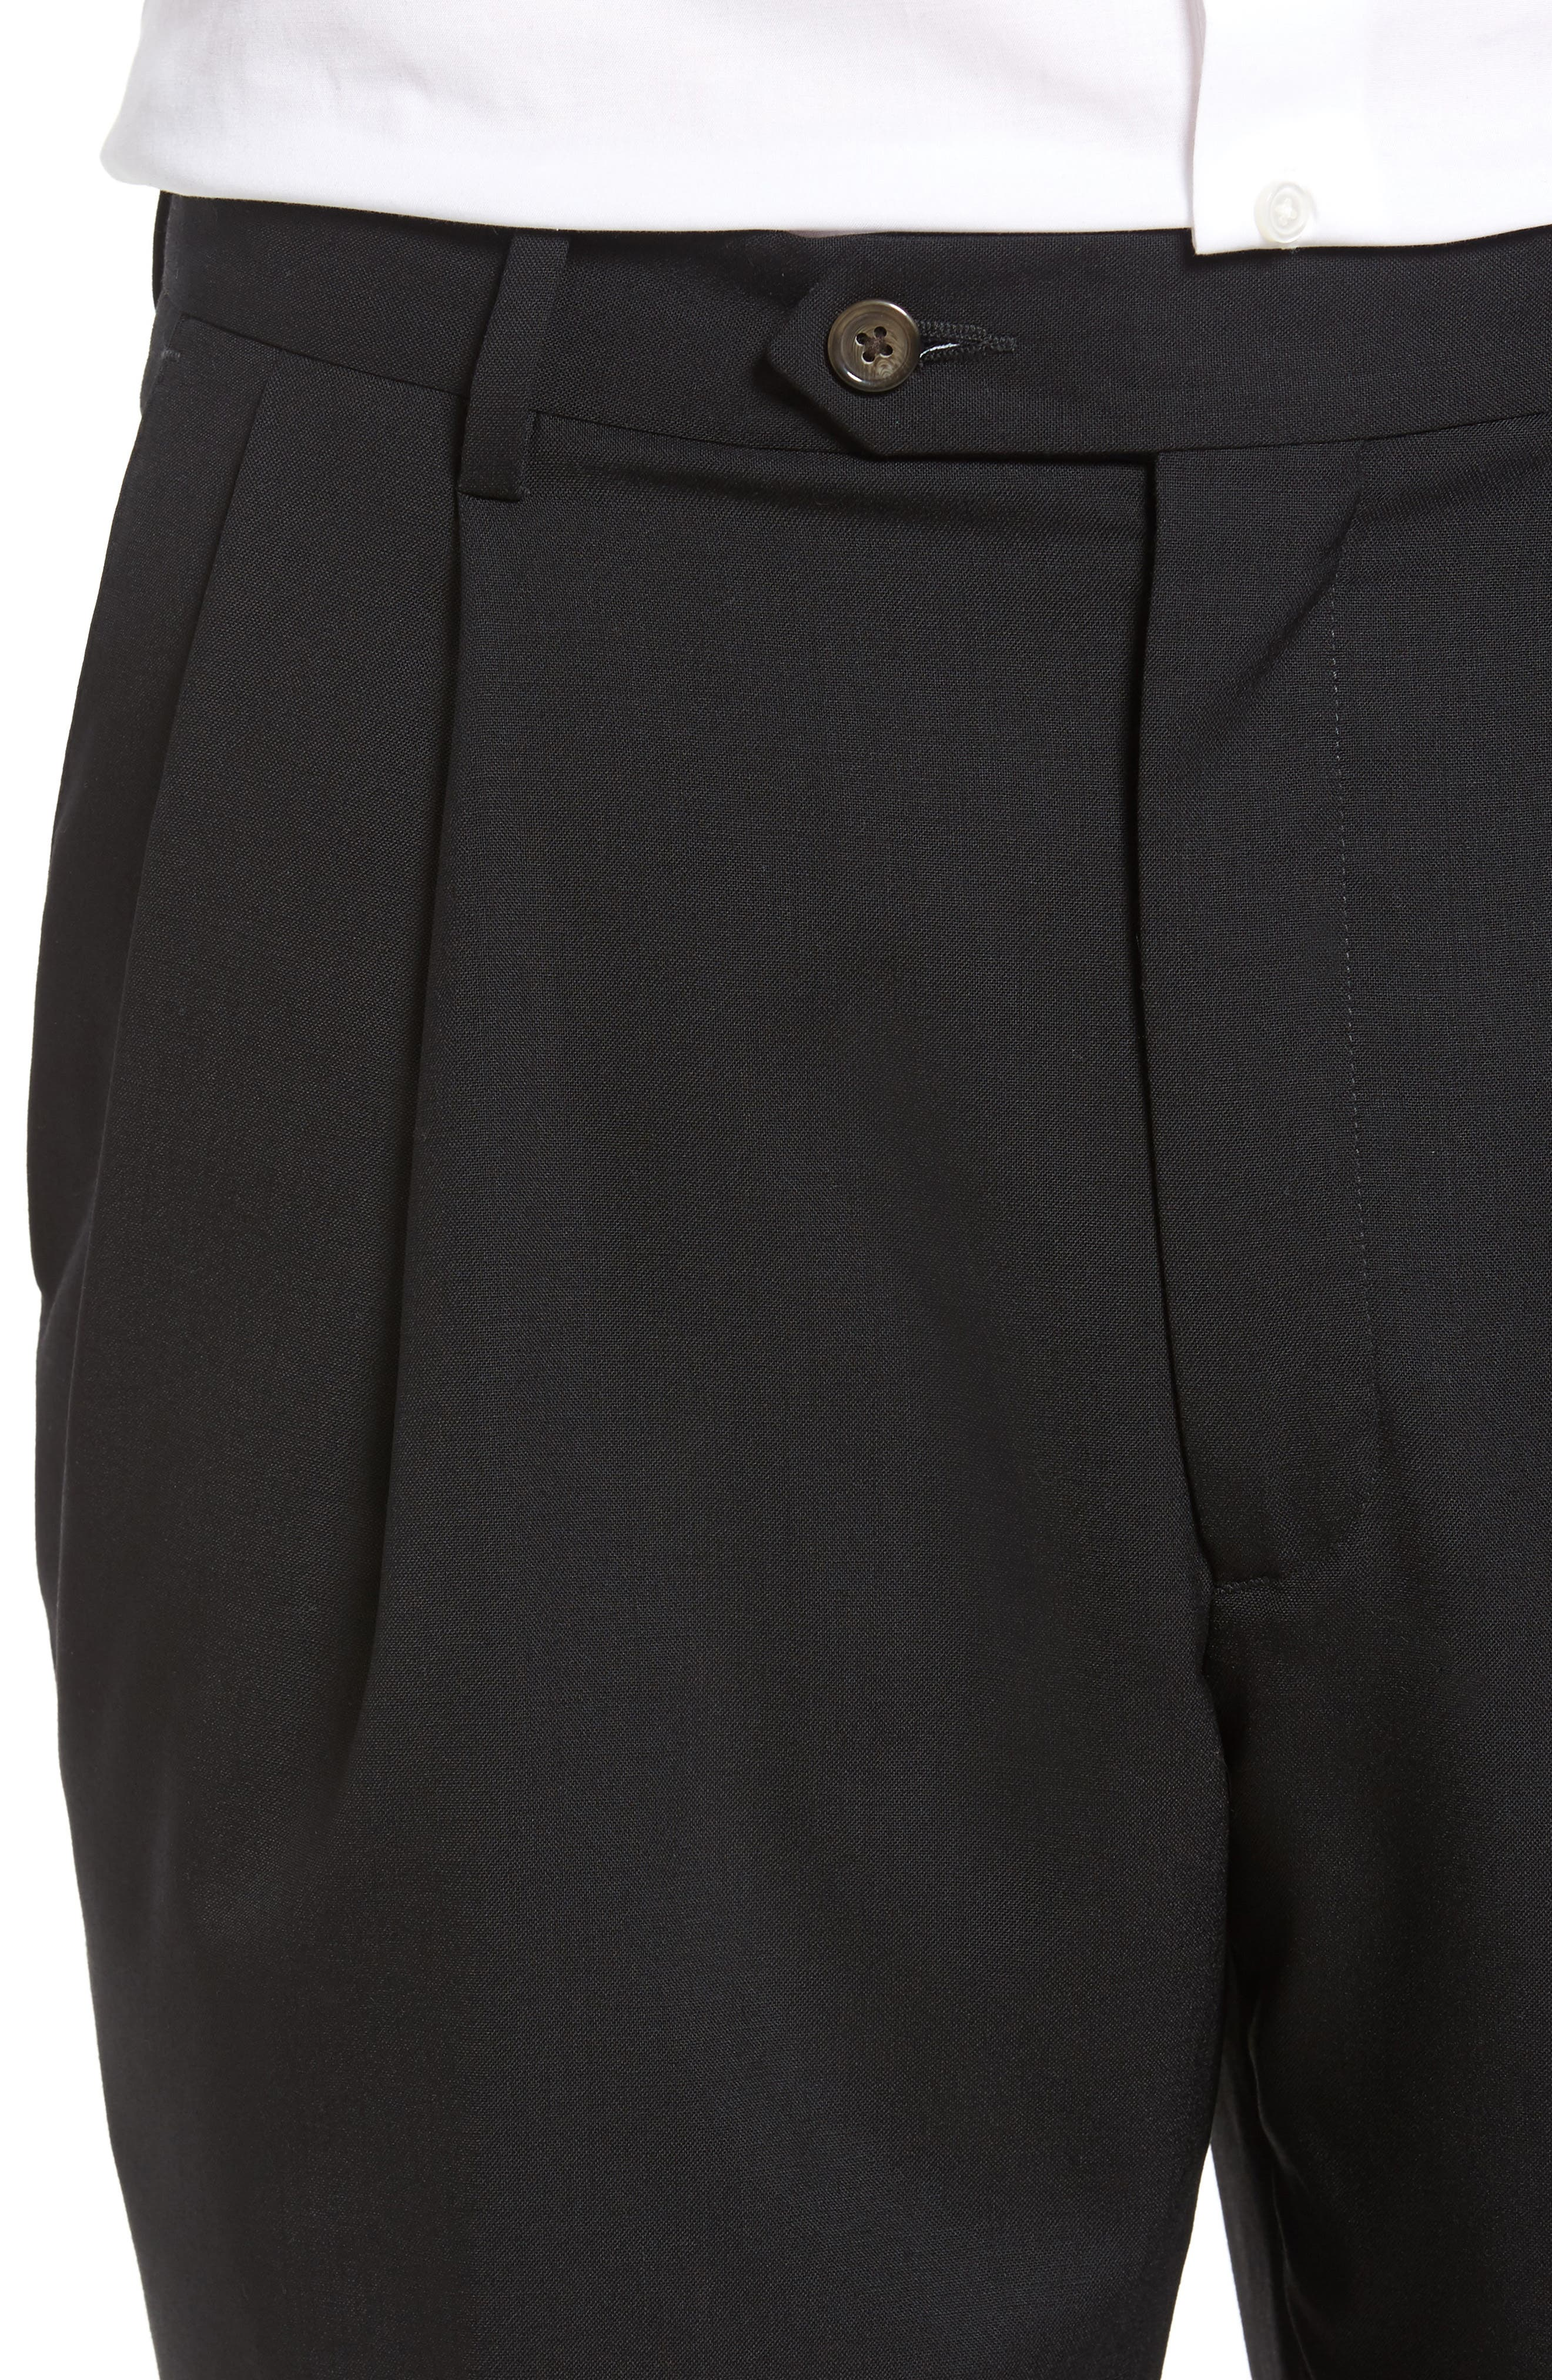 Pleated Solid Wool Trousers,                             Alternate thumbnail 5, color,                             001